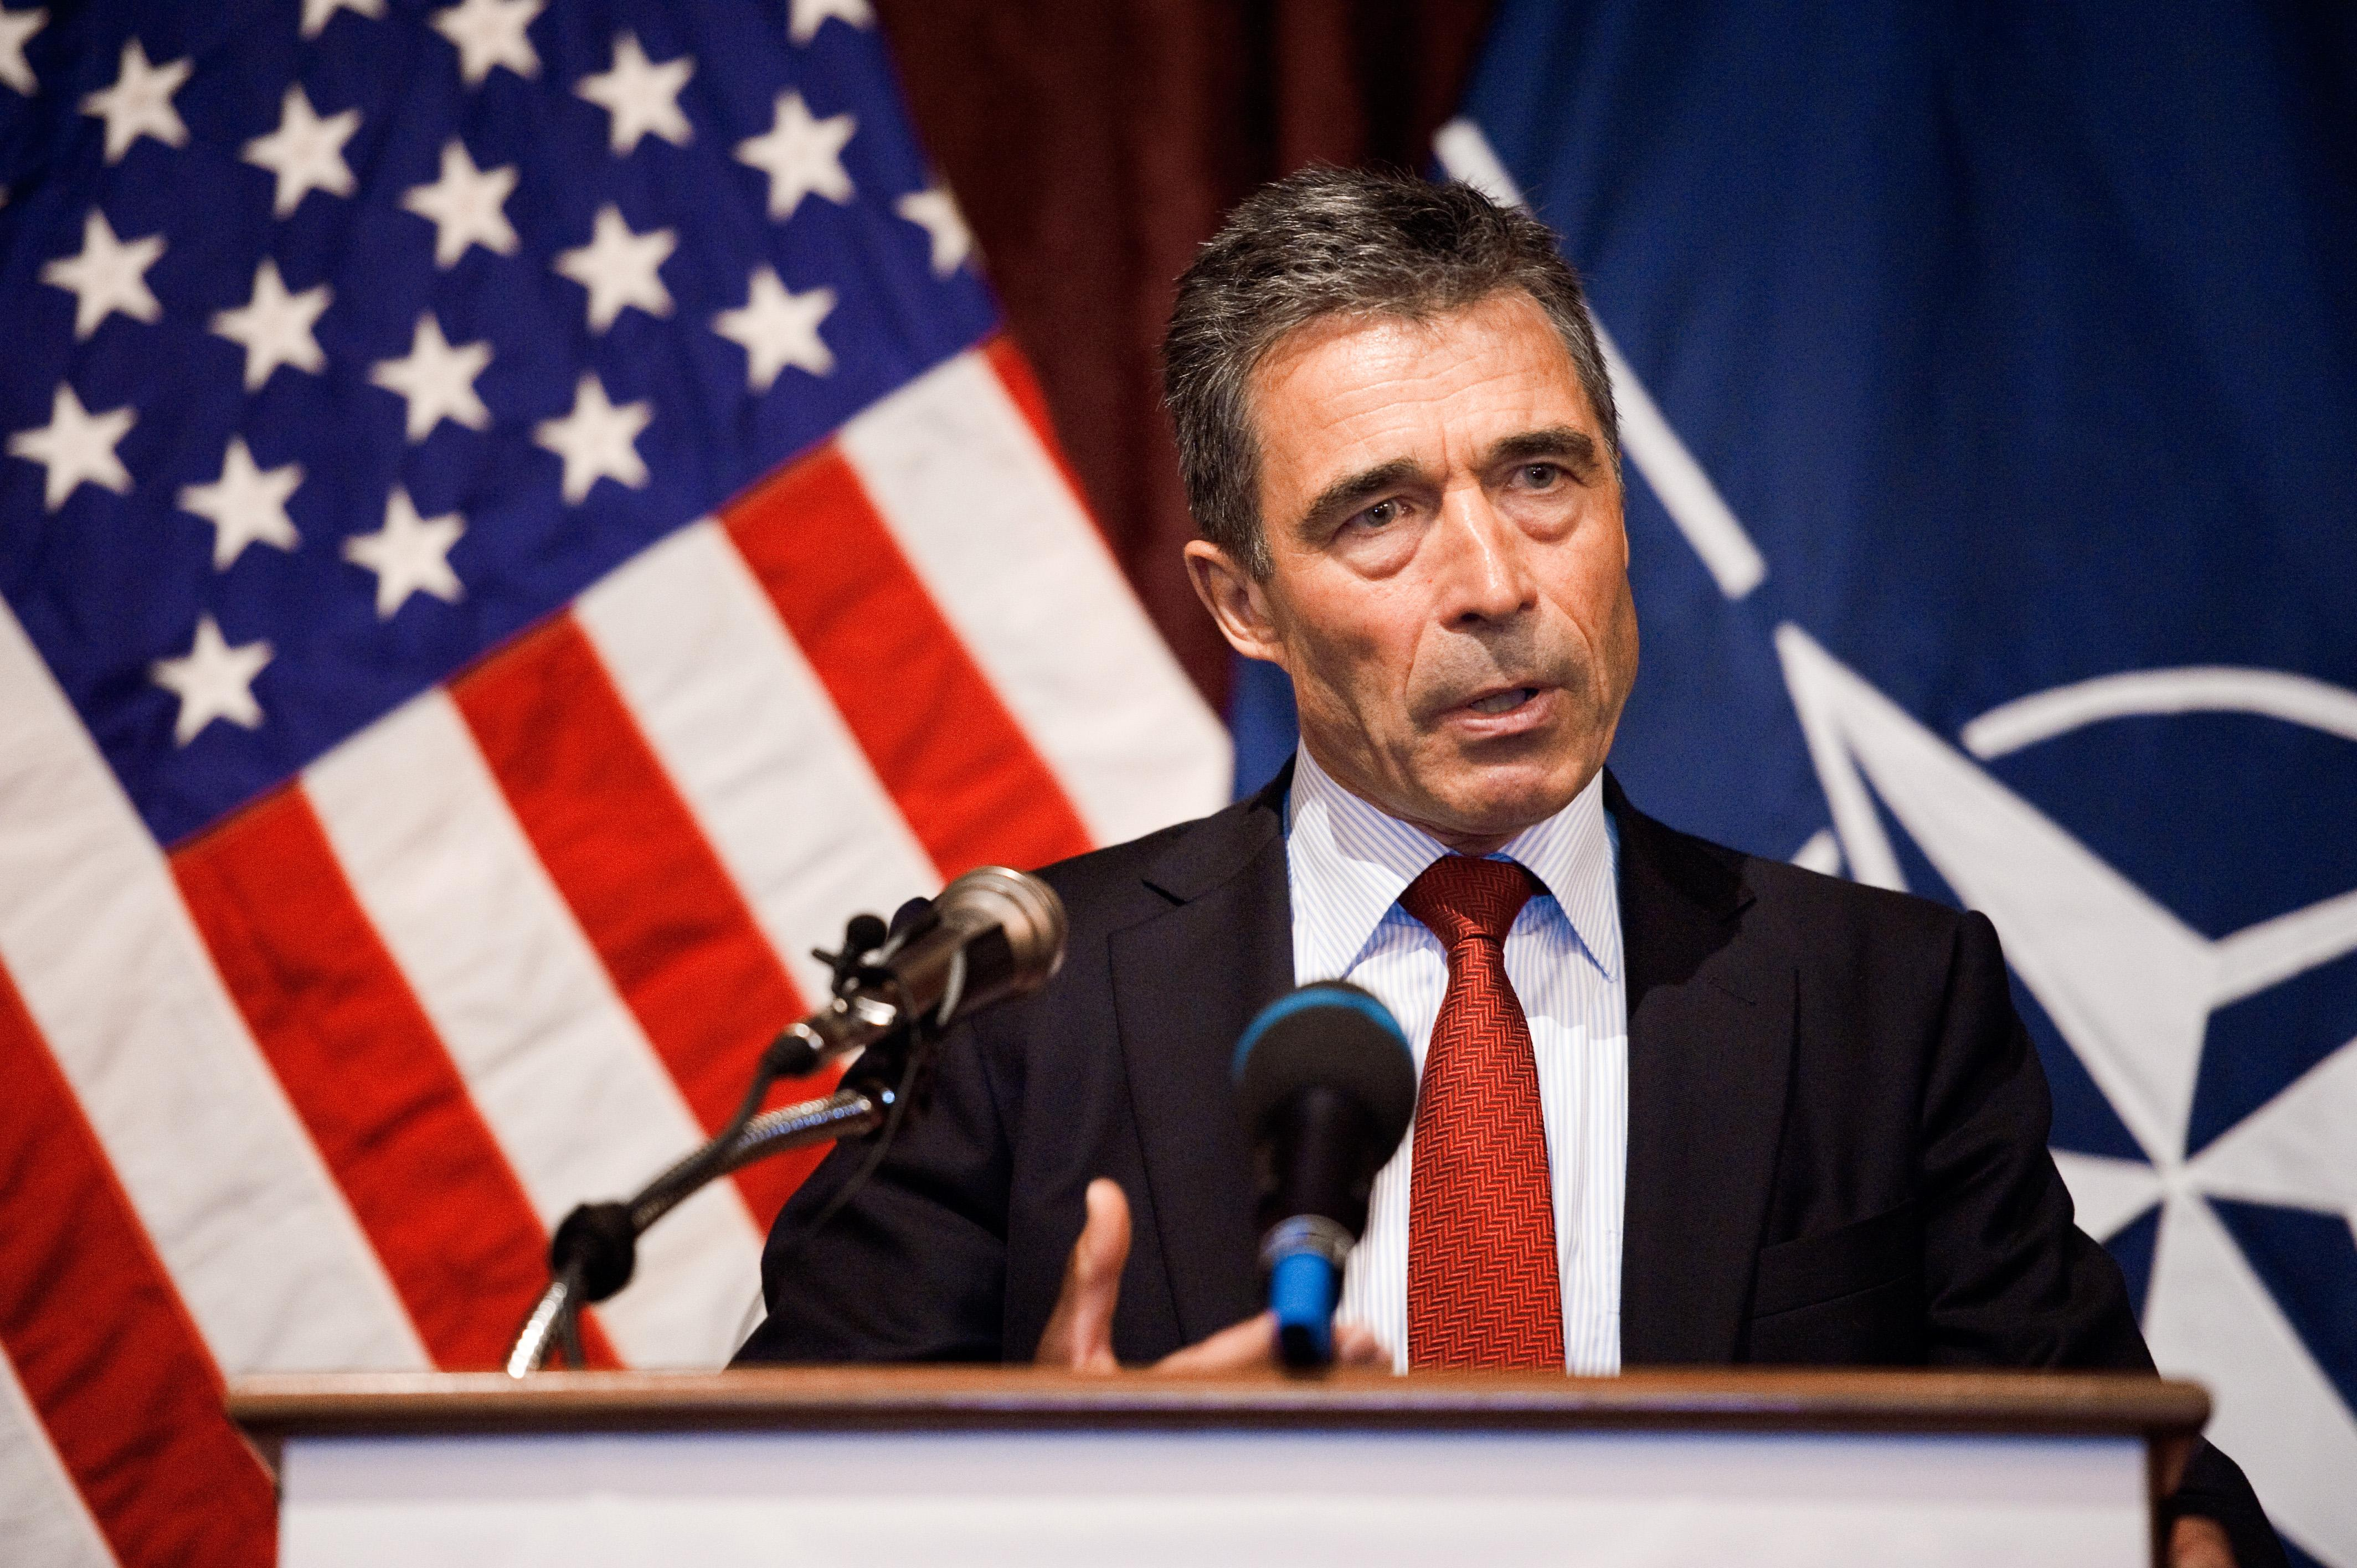 An older man in a suit speaking at a podium in front of two flags.